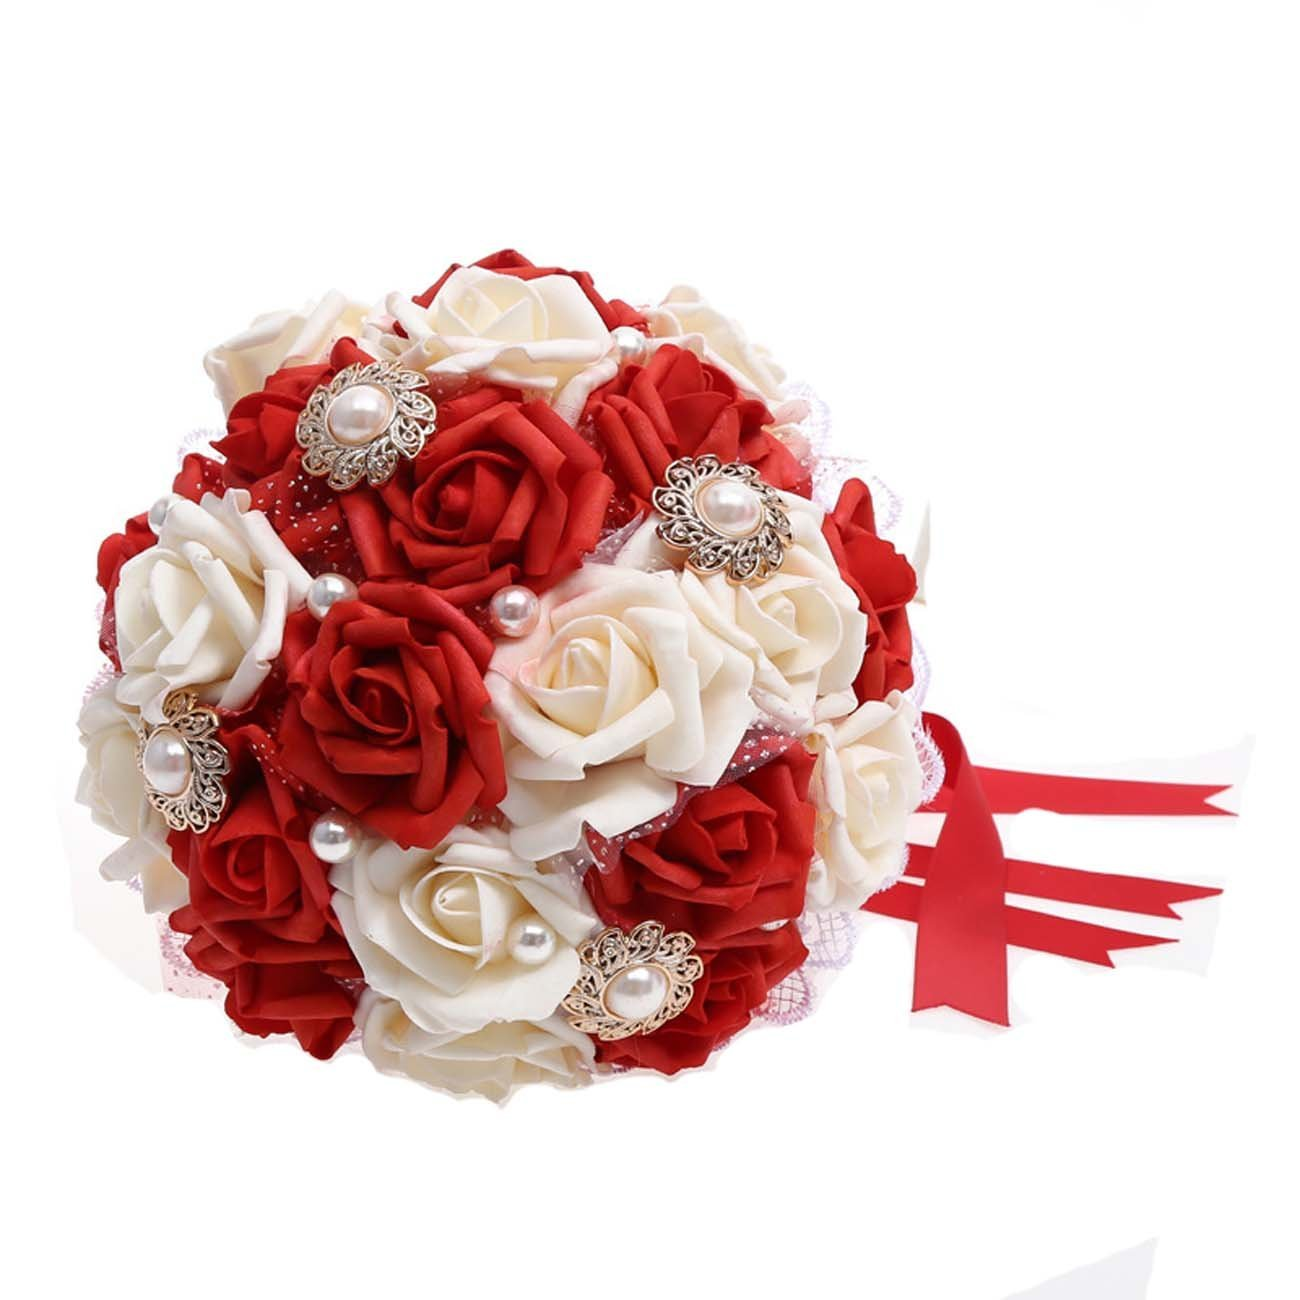 Cheap red white black wedding bouquets find red white black wedding get quotations alicehouse french rose artificial holding wedding bridesmaid bouquet toss bridal bouquets awf015 red white mightylinksfo